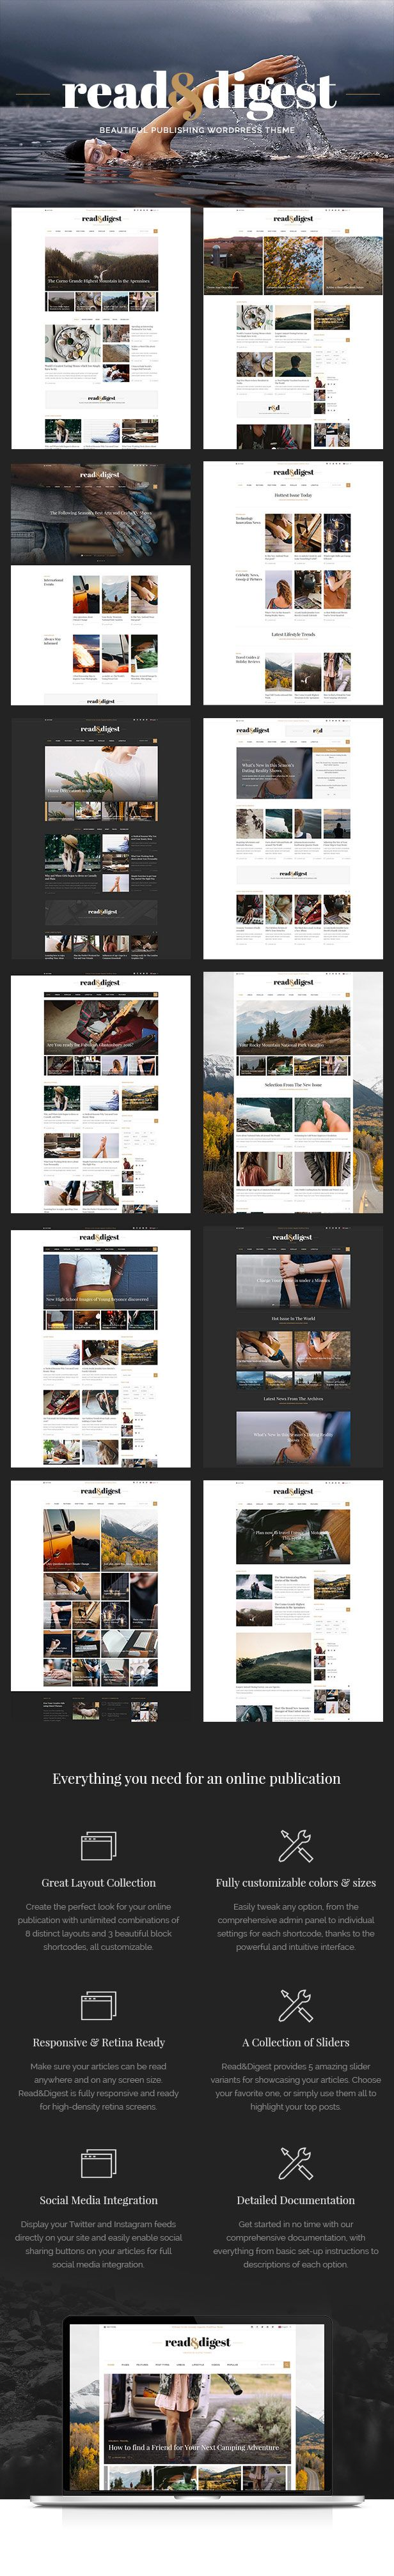 Read & Digest - Wordpress Theme for Magazines, Newspapers & Blogs • Download theme ➝ https://themeforest.net/item/read-digest-theme-for-magazines-newspapers-blogs/14806079?ref=pxcr